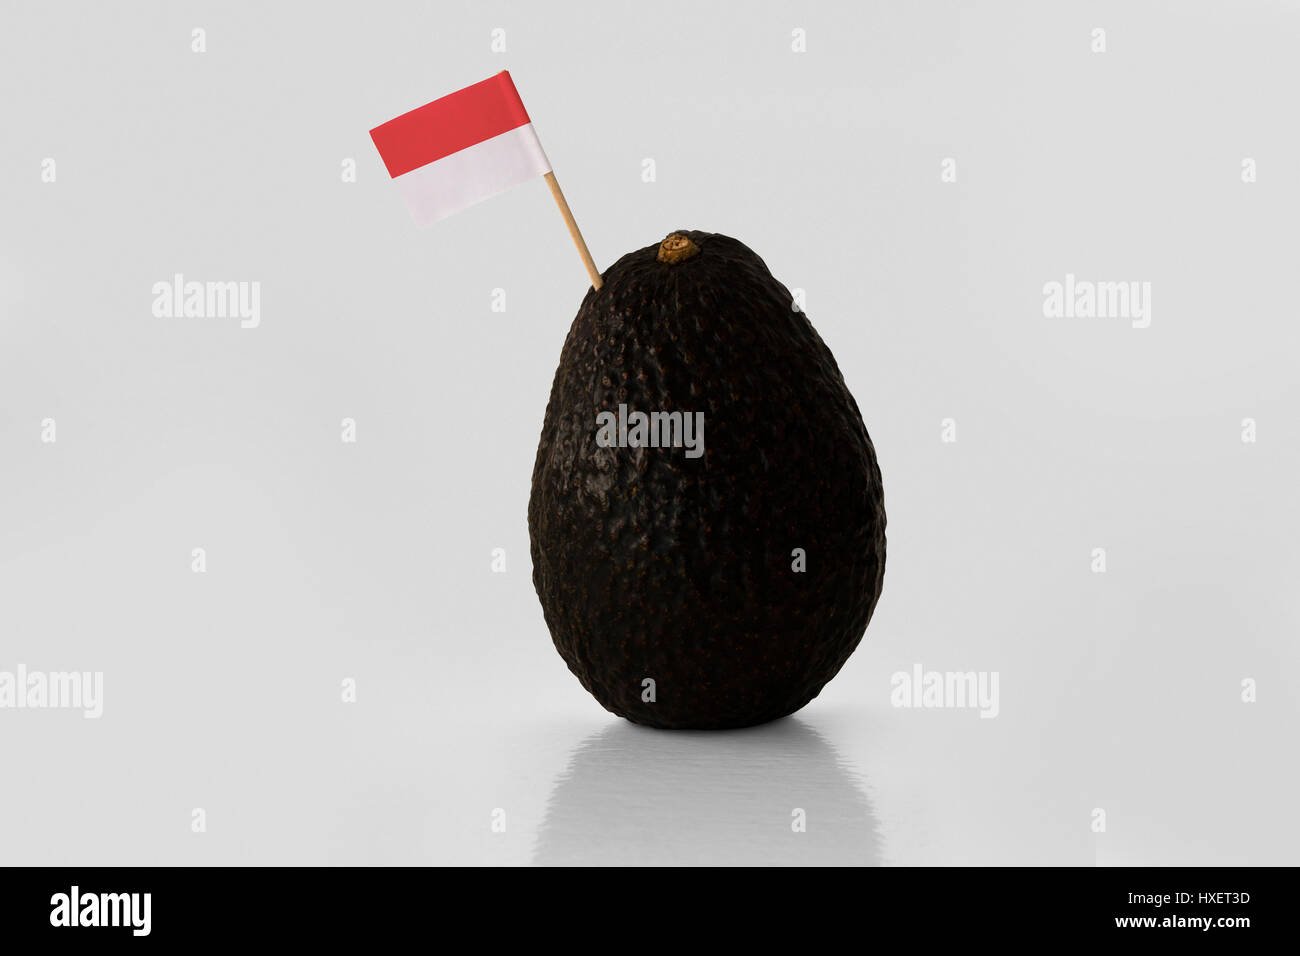 Isolated avocado with Indonesian flag - Stock Image